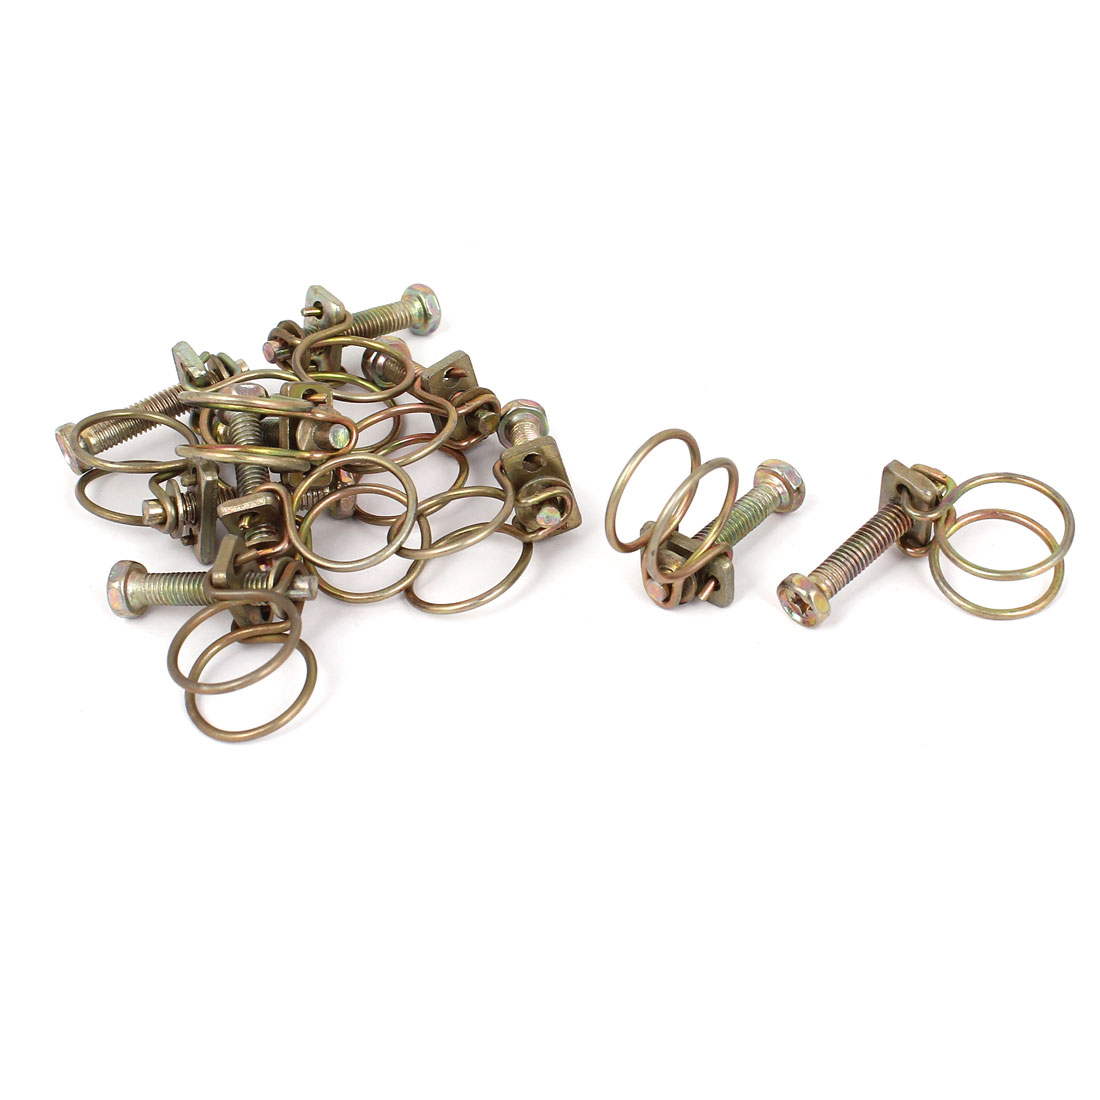 Adjustable Range Steel Wire Water Tube Hose Clamp Bronze Tone 10pcs